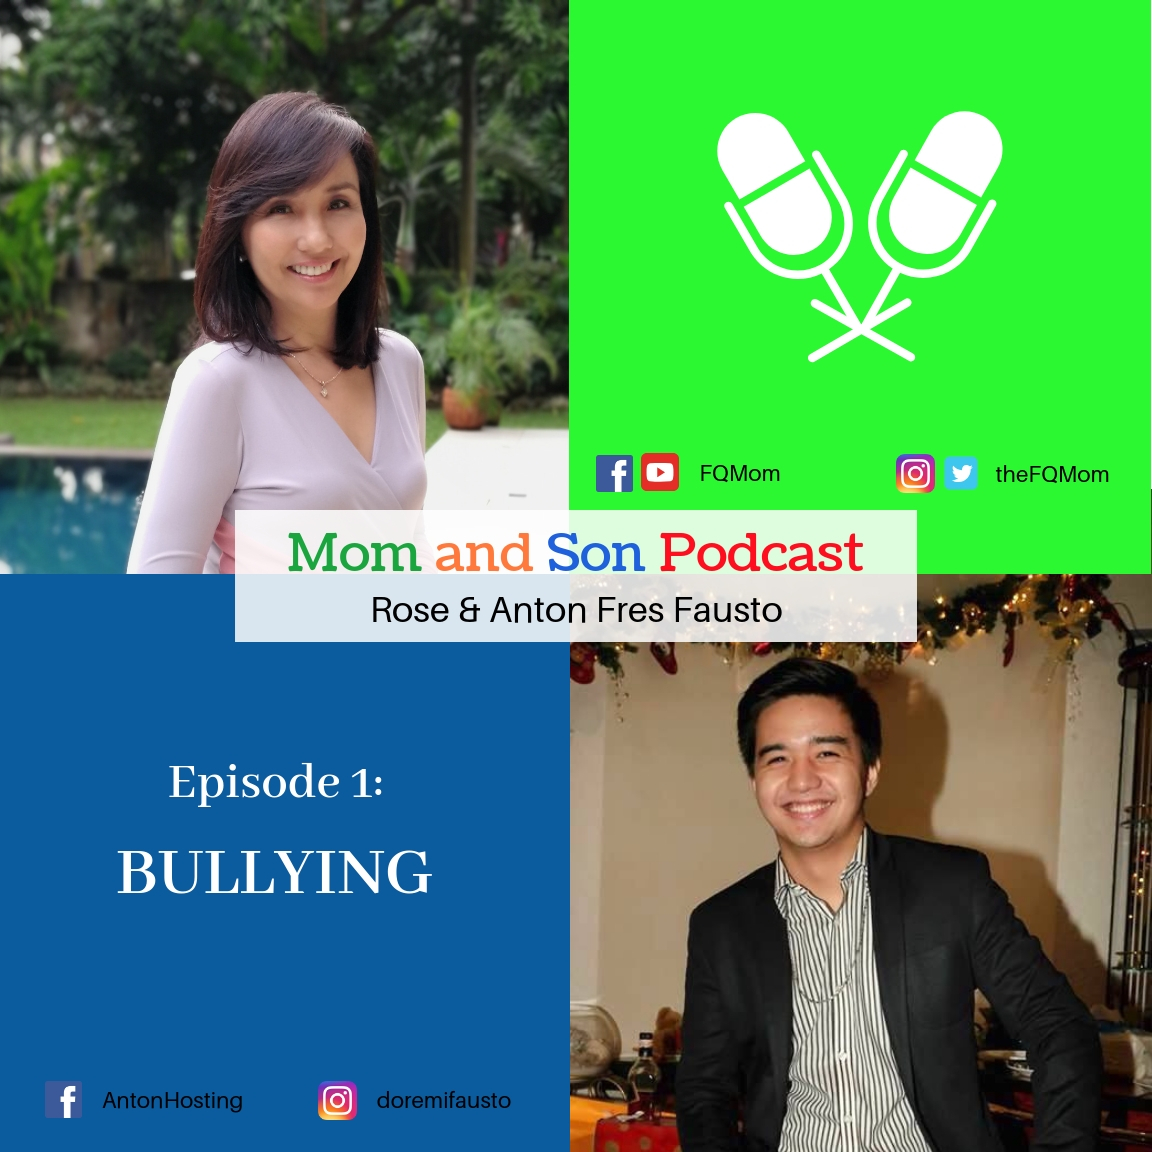 Mom and Son Podcast published every 2nd and 4th Tuesday of the month at 7am. You may also listen at your convenience.